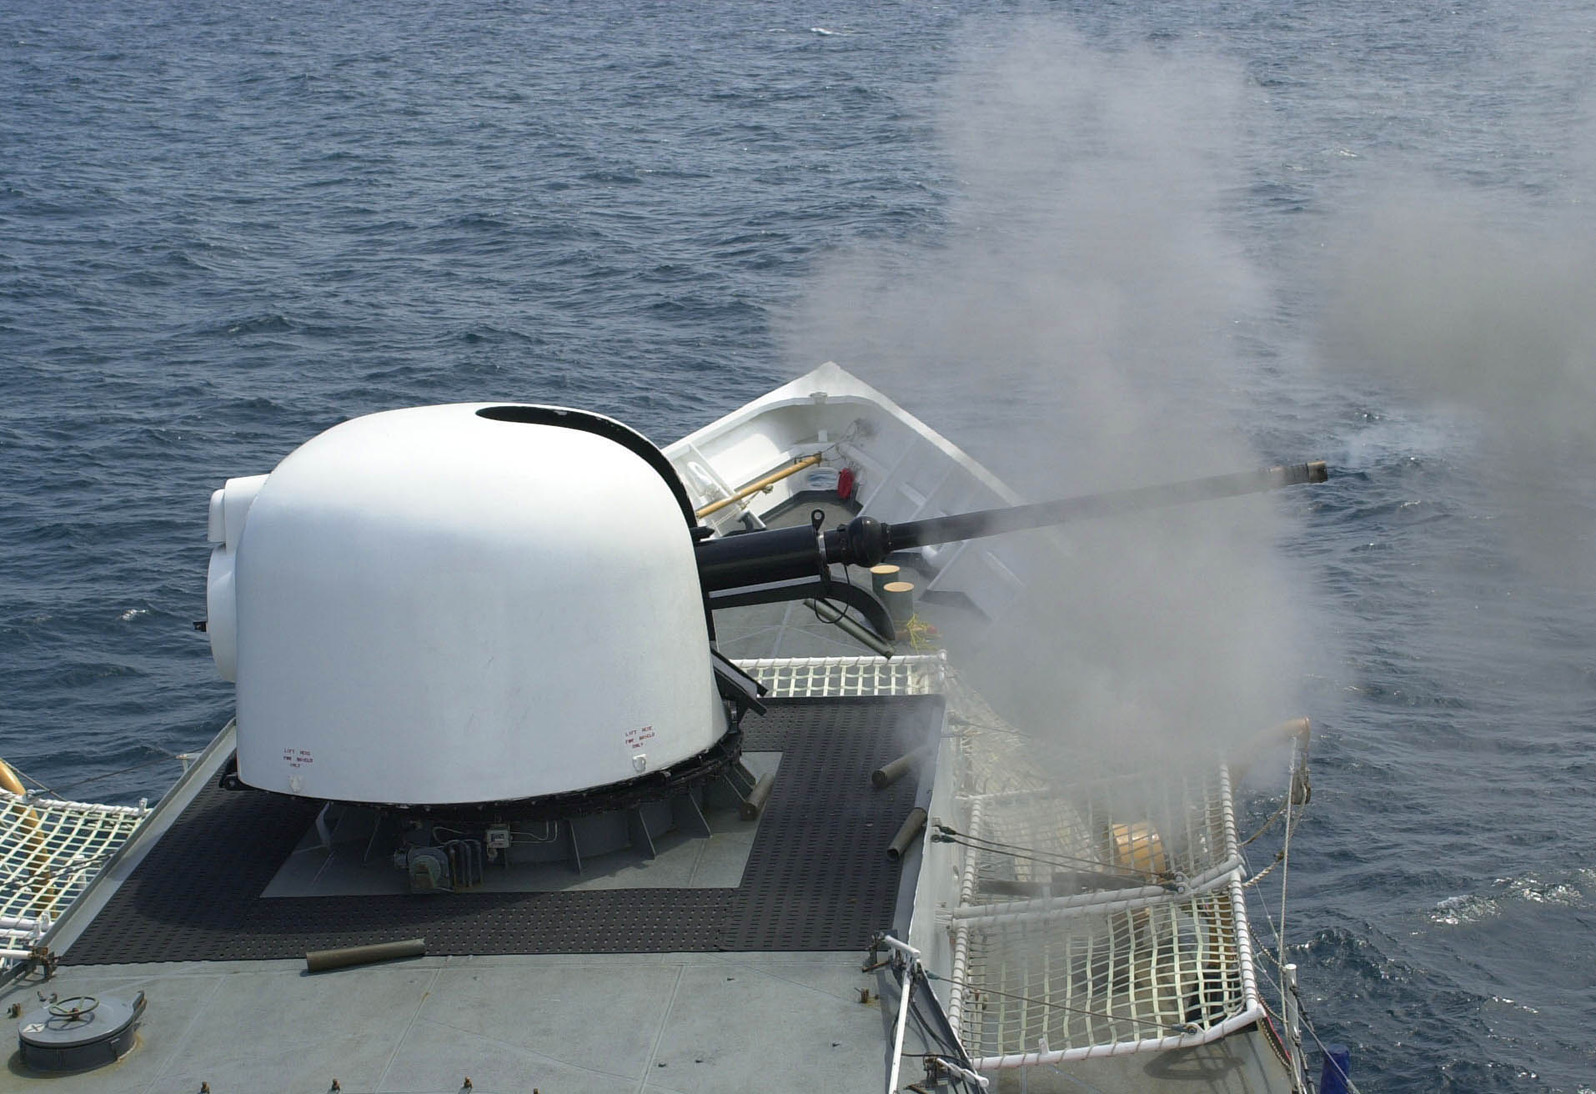 JACKSONVILLE, Fla. (Apr. 26, 2005) The 76mm gun aboard the Coast Guard Cutter Gallatin fires a three-round burst during a live-fire exercise off the coast of Mayport, Fla., April 26, 2005. The MK 75 can fire up to 80 rounds a minute and has a range of approximately 10 nautical miles. The Gallatin is a 378-foot cutter homeported in Charleston, S.C. and is in Mayport for Tailored Annual Cutter Training (TACT). U.S. Coast Guard photo by PA3 Bobby Nash.